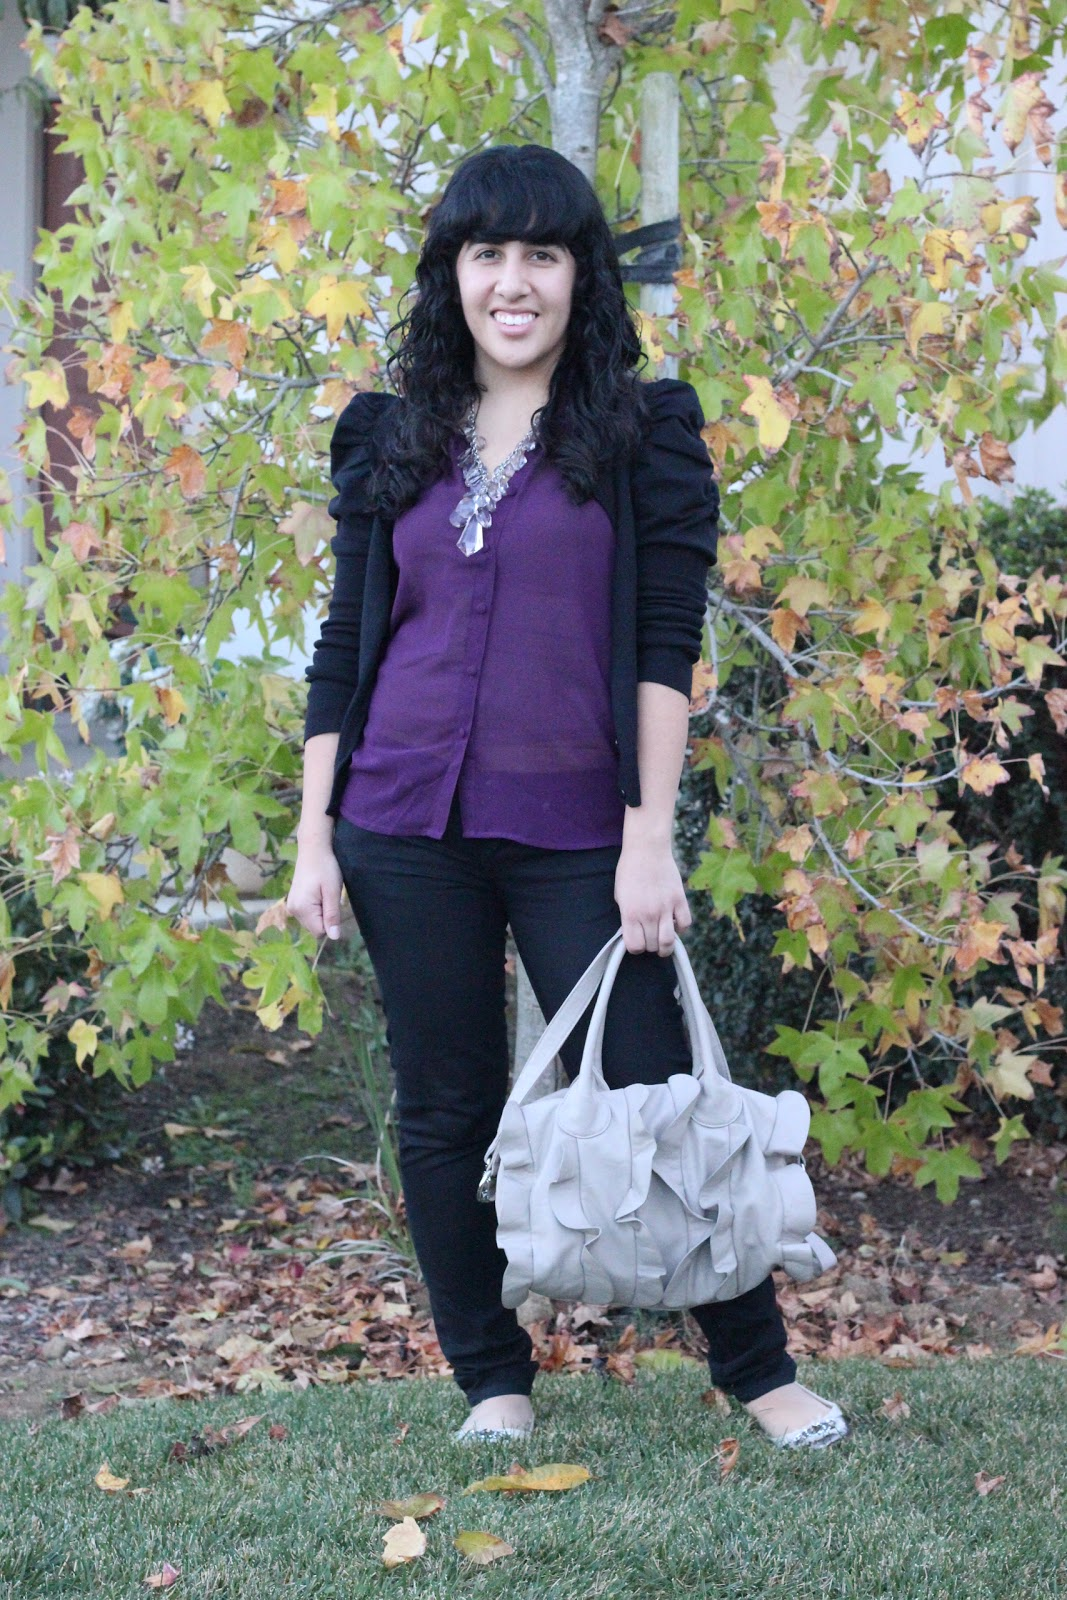 Thanksgiving Day Outfit - What to Wear